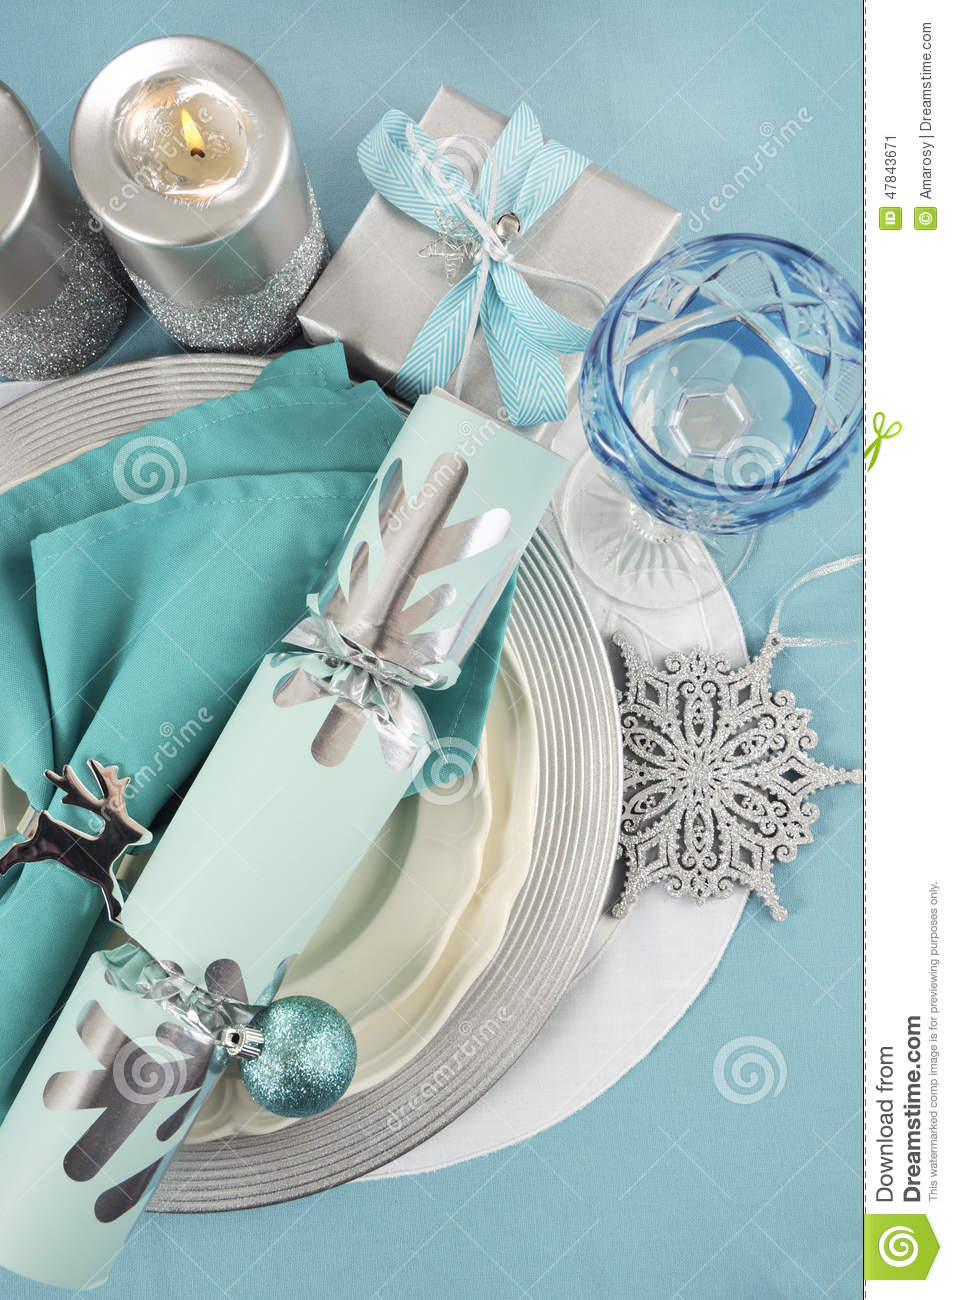 Silver and white christmas table decorations - Christmas Table Place Settings In Aqua Blue Silver And White